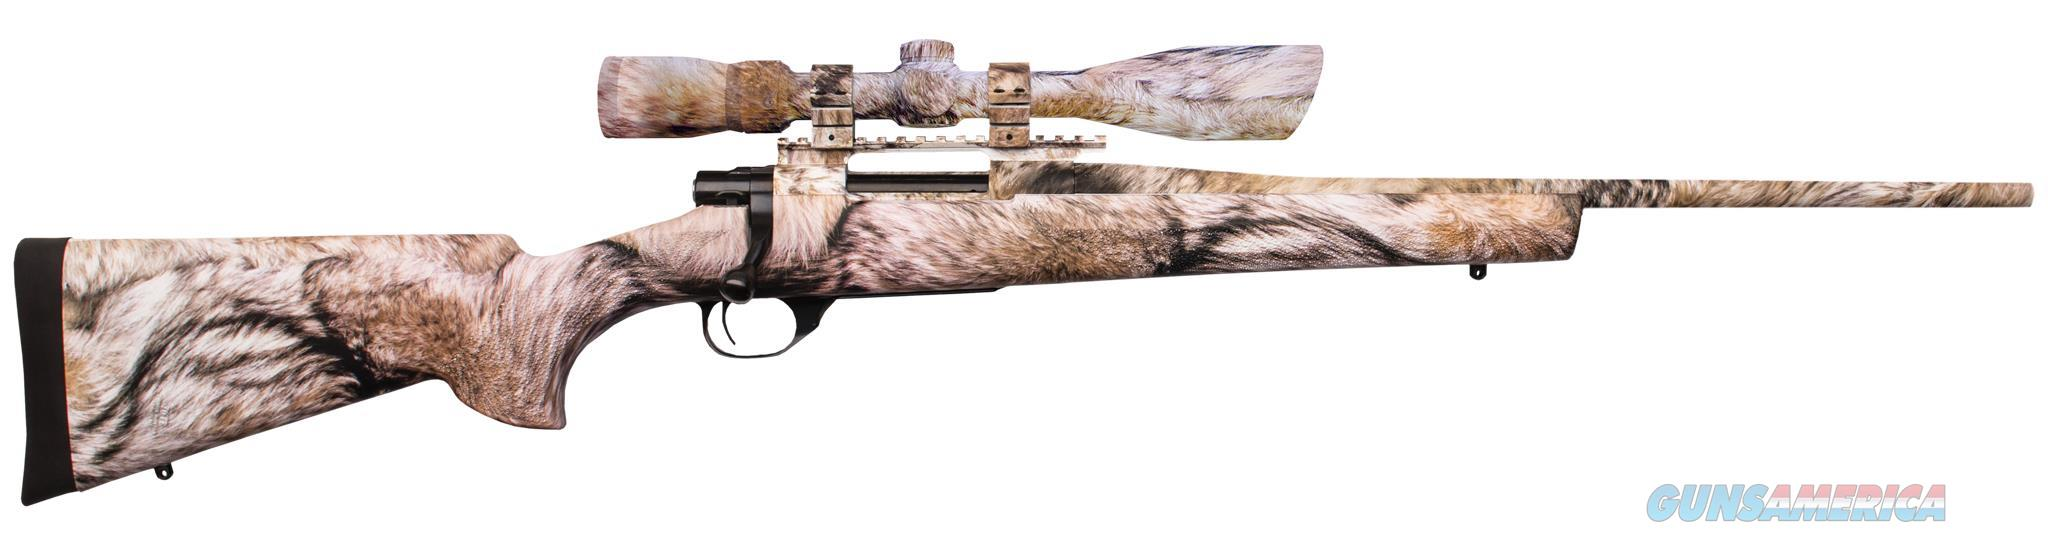 "LEGACY SPORTS YOTE HB PKG 223 20"" 4RD HKF90227YOTE+  Guns > Rifles > Howa Rifles"